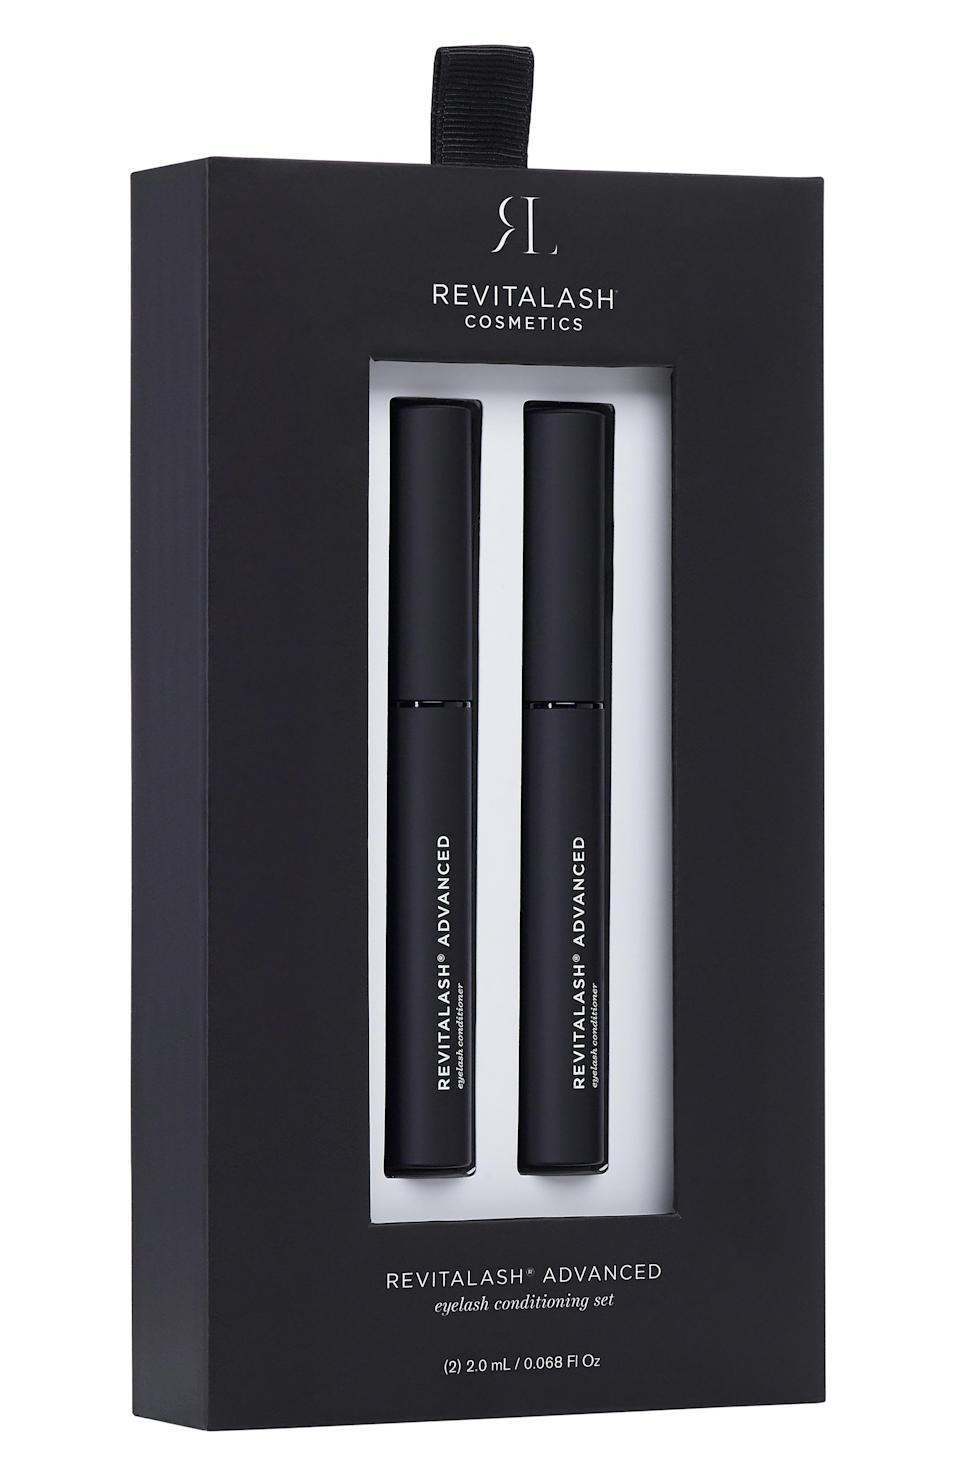 """<p><strong>RevitaLash ADVANCED </strong></p><p>nordstrom.com</p><p><a href=""""https://go.redirectingat.com?id=74968X1596630&url=https%3A%2F%2Fwww.nordstrom.com%2Fs%2Frevitalash-advanced-eyelash-conditioner-duo-196-value%2F5681619&sref=https%3A%2F%2Fwww.harpersbazaar.com%2Fbeauty%2Fg36991550%2Fnordstrom-anniversary-sale-beauty-deals%2F"""" rel=""""nofollow noopener"""" target=""""_blank"""" data-ylk=""""slk:Shop Now"""" class=""""link rapid-noclick-resp"""">Shop Now</a></p><p><strong>Sale: $98</strong></p><p><strong>Value: $196</strong></p><p>Used regularly, this blend of peptides, panthenol, and biotin work to soften, strengthen, and help grow eyelashes. One single tube normally costs $98, which essentially makes this deal a two-for-one steal.</p>"""